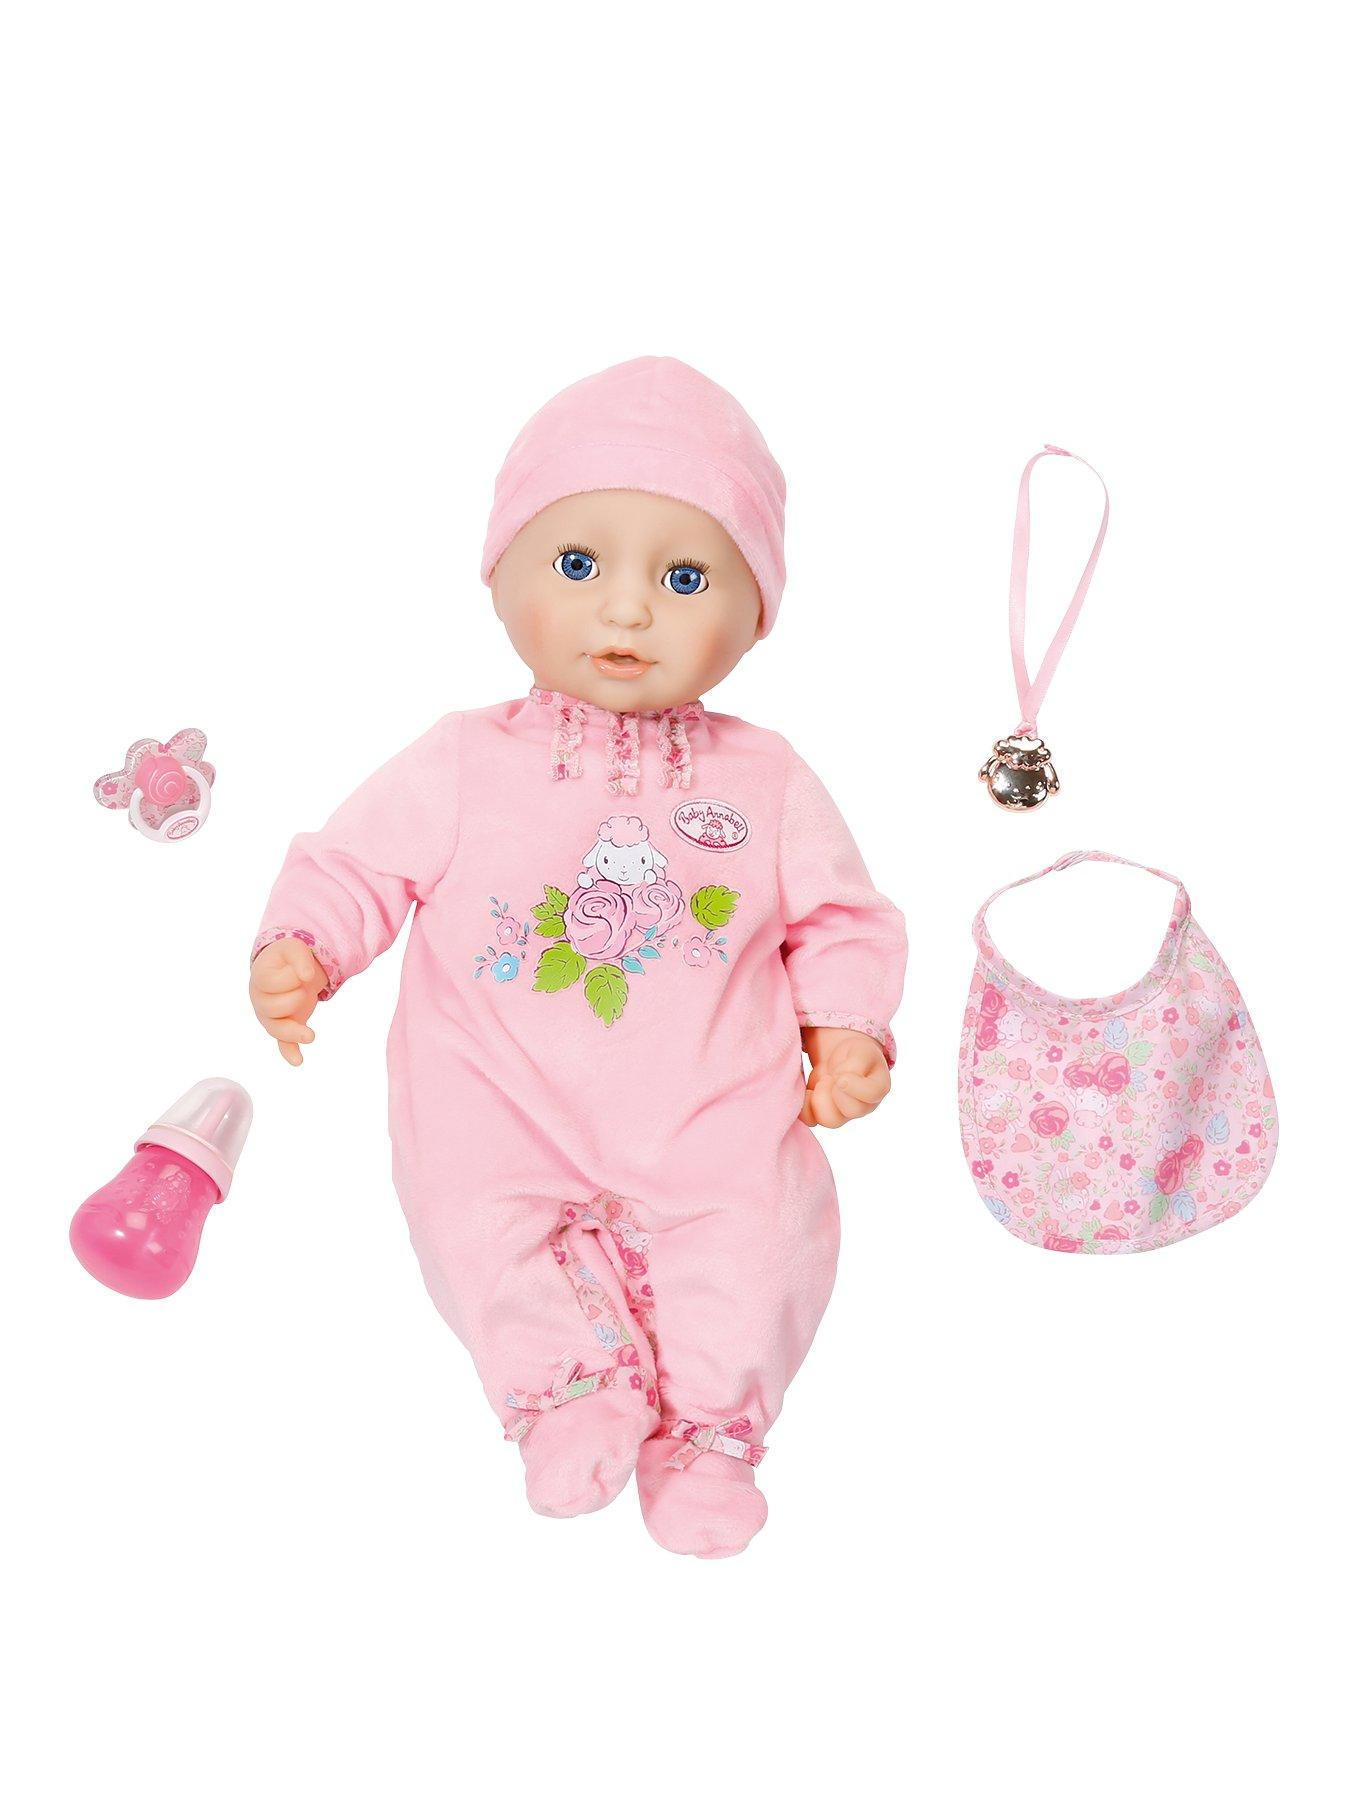 Compare prices for Baby Annabell Doll